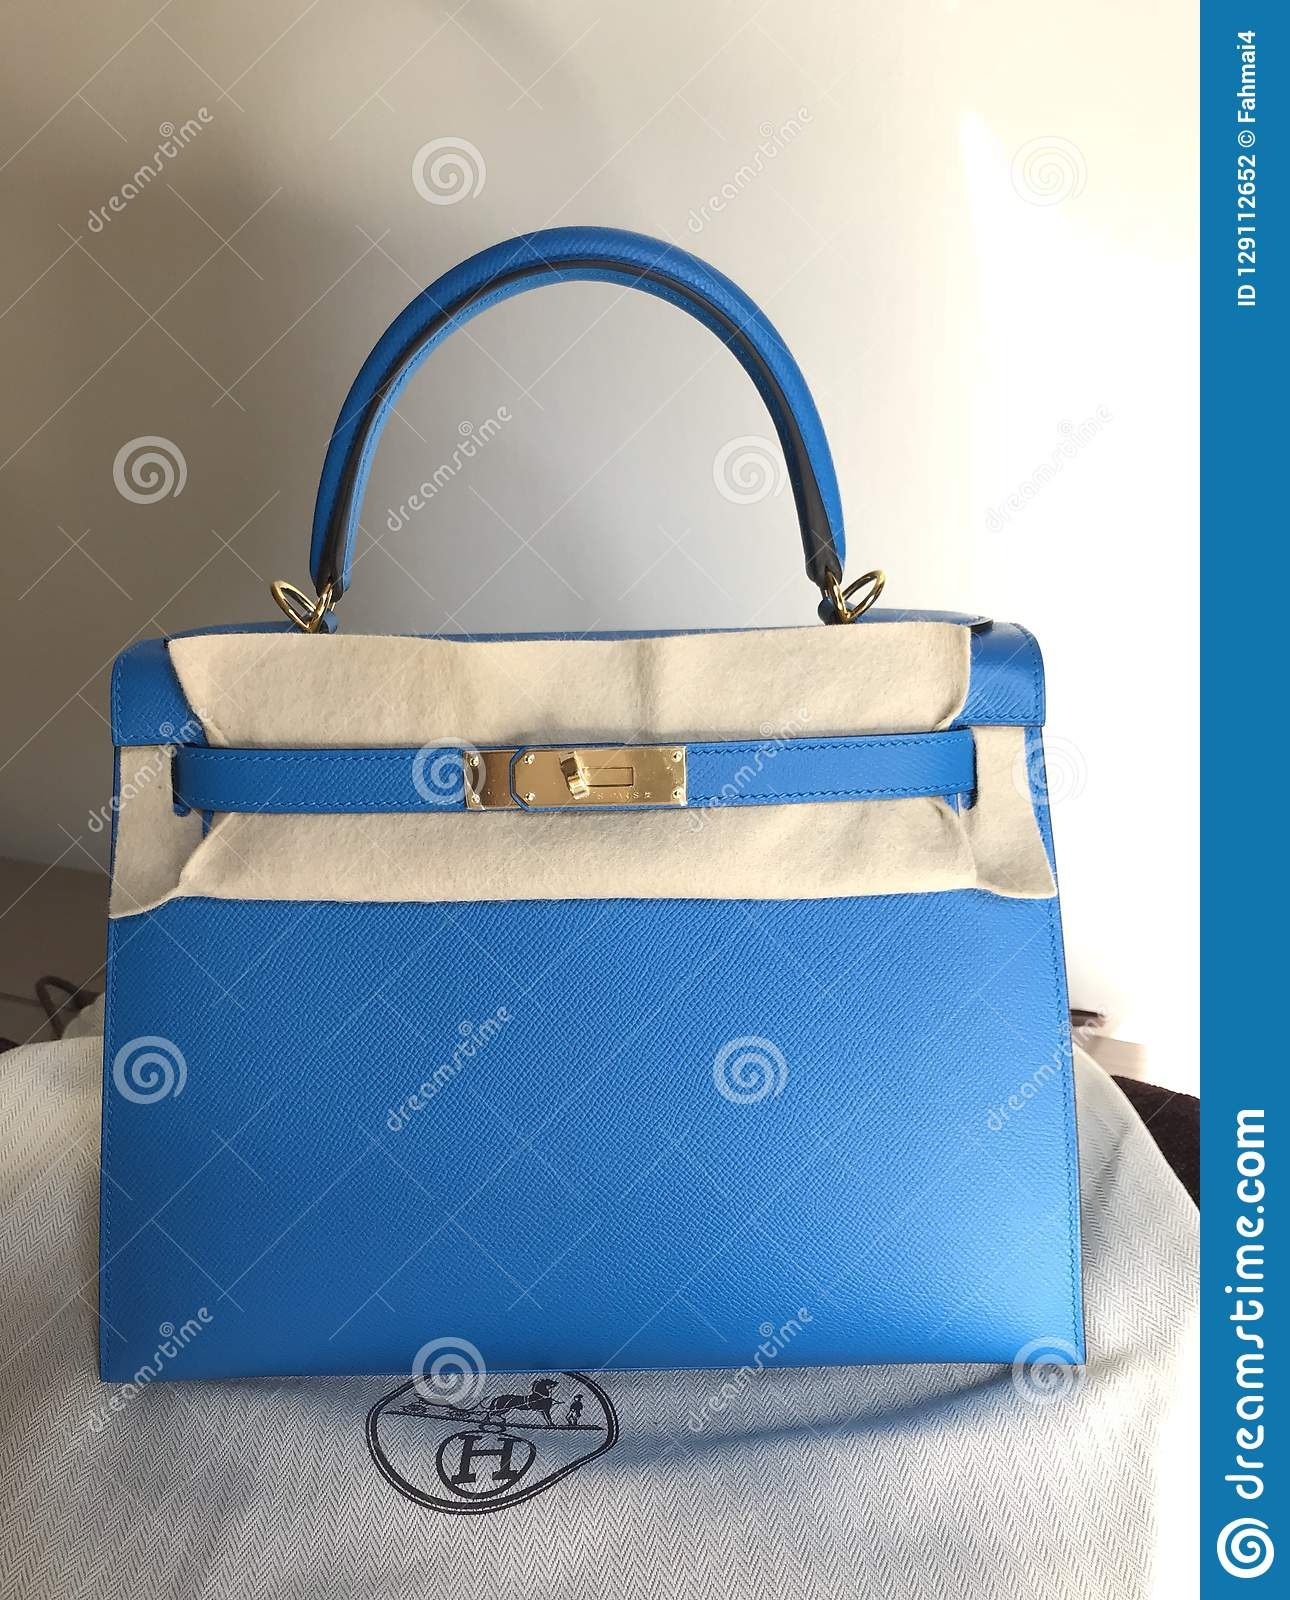 b1ab5fdddc the luxury handbag Hermes kelly size 28 in blue zanzibar color epsom  leather and gold hardware